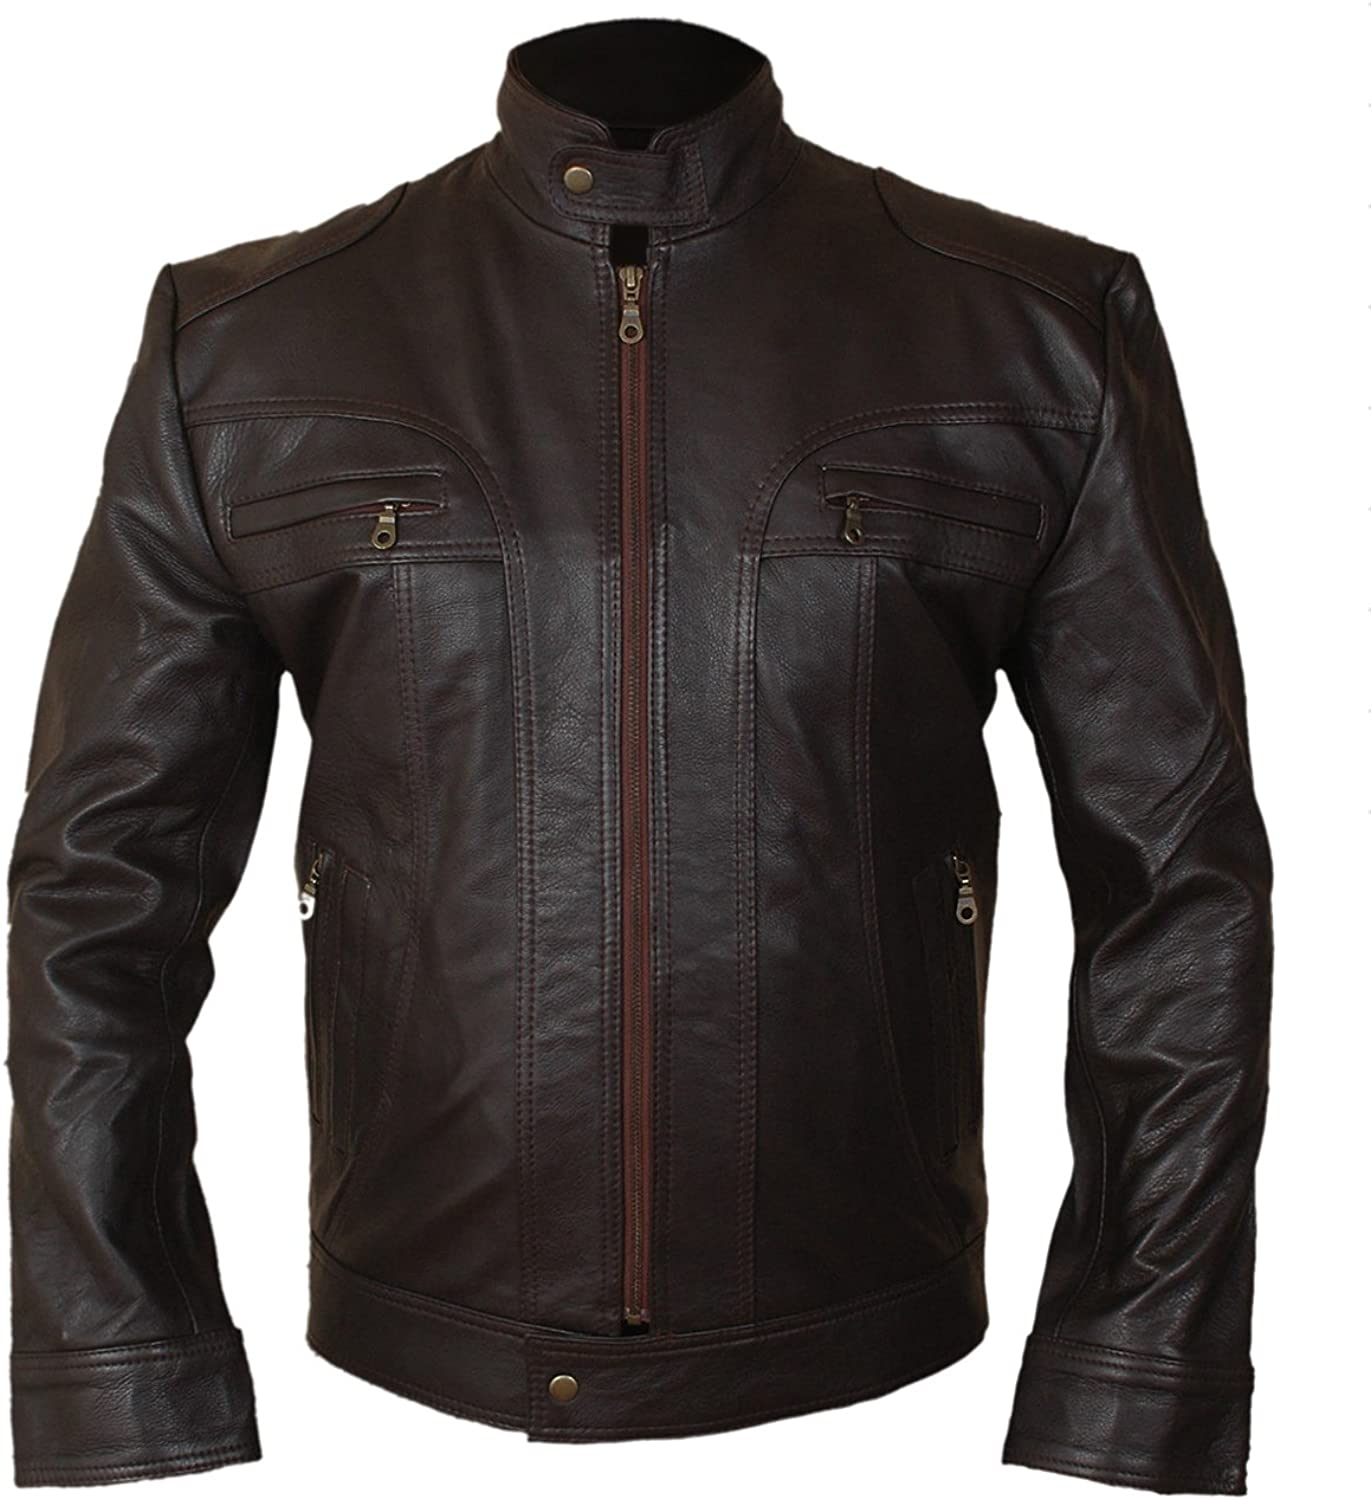 Western Fashions Men, Women Matthew McConaughey The Ghosts of Girlfriends Past Brown Leather Jacket